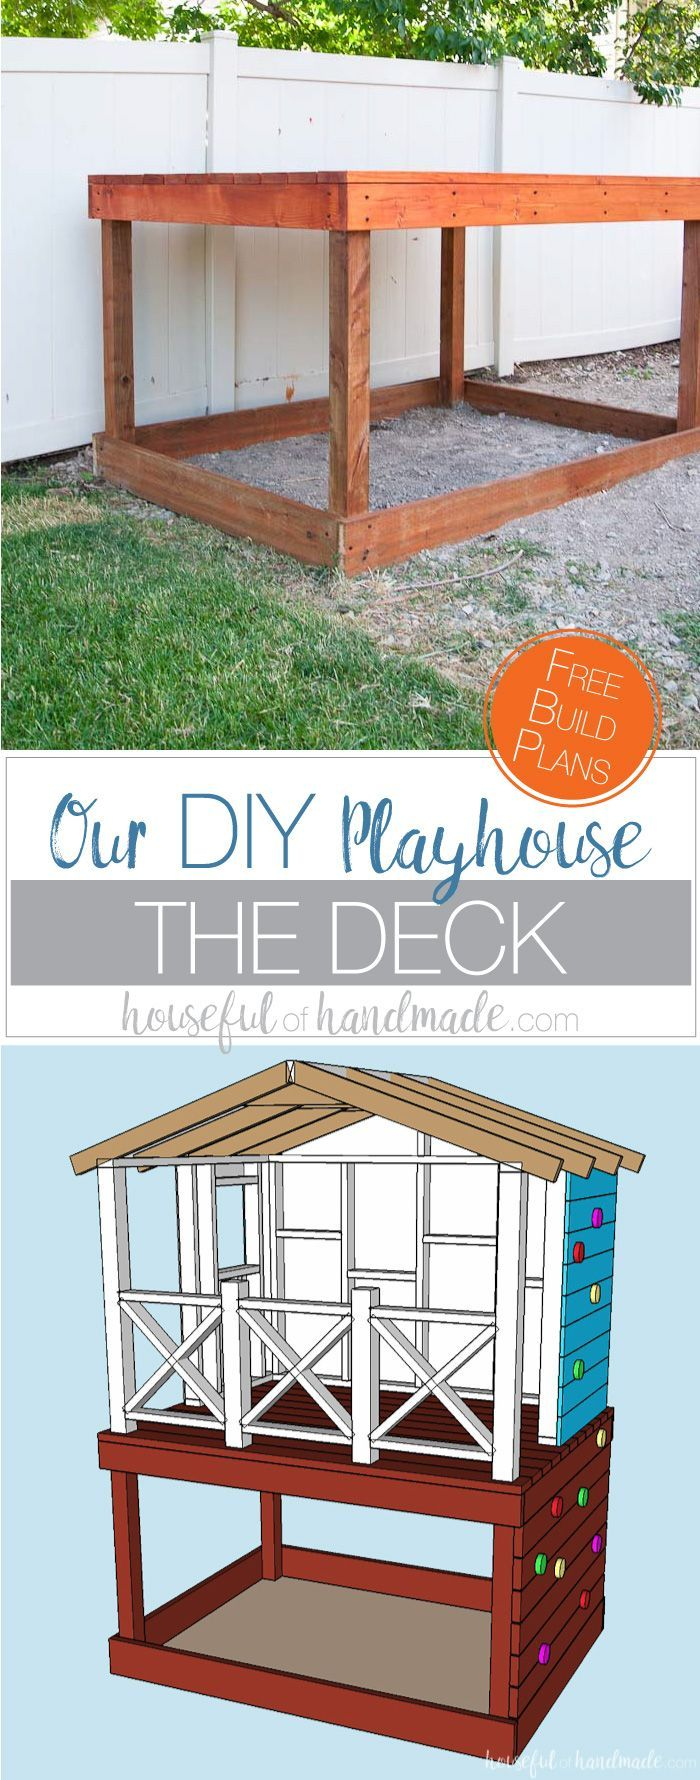 Even though our yard is small, we decided we still needed a DIY playhouse.